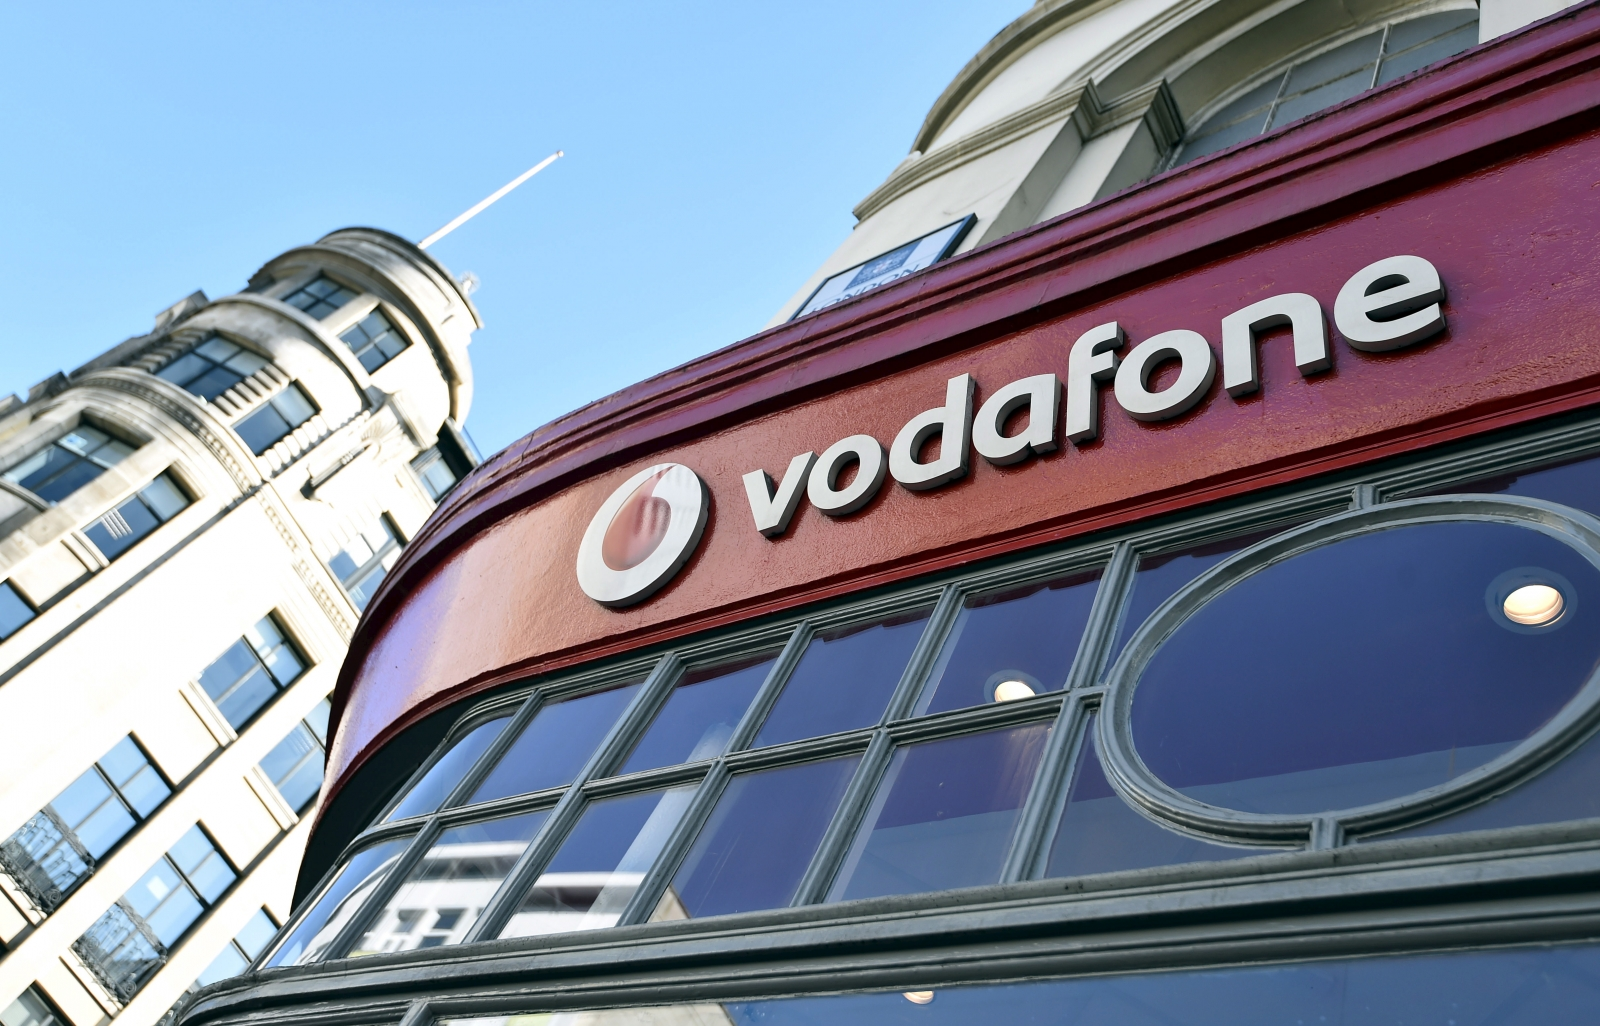 Vodafone New Zealand and Sky Network agree to merge in a £1.67bn deal